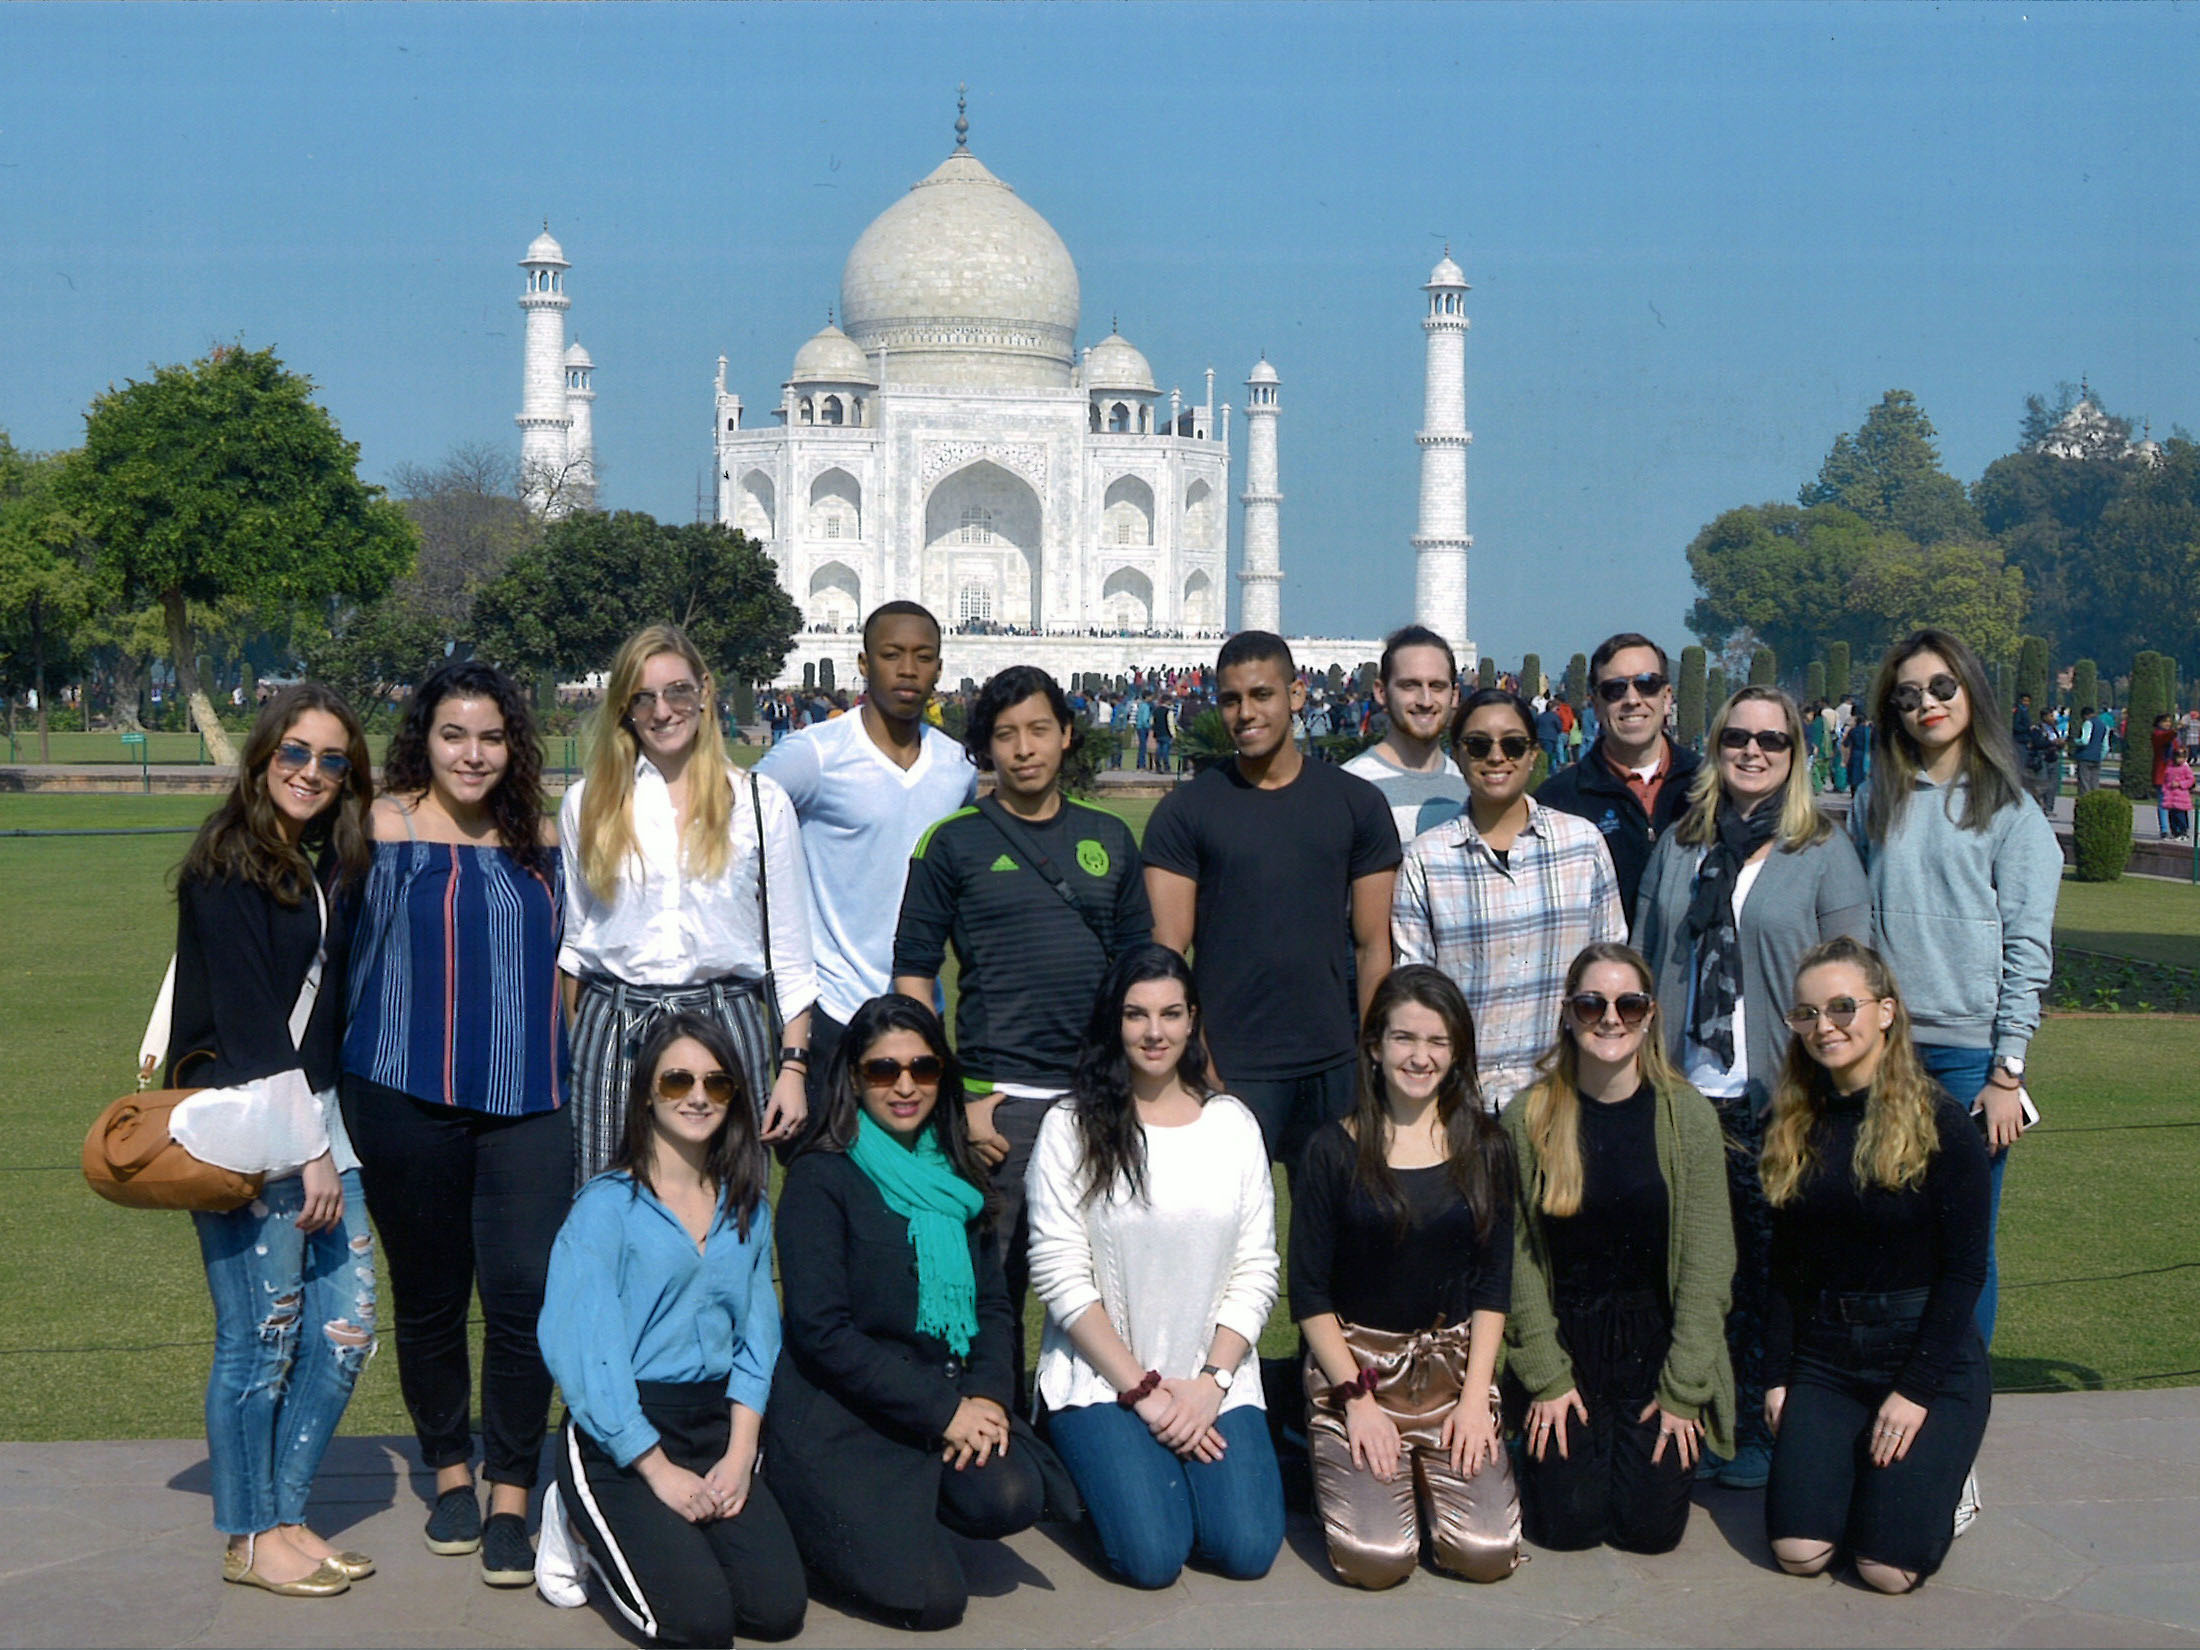 Students and faculty stand in front of the Taj Mahal in Agra, India